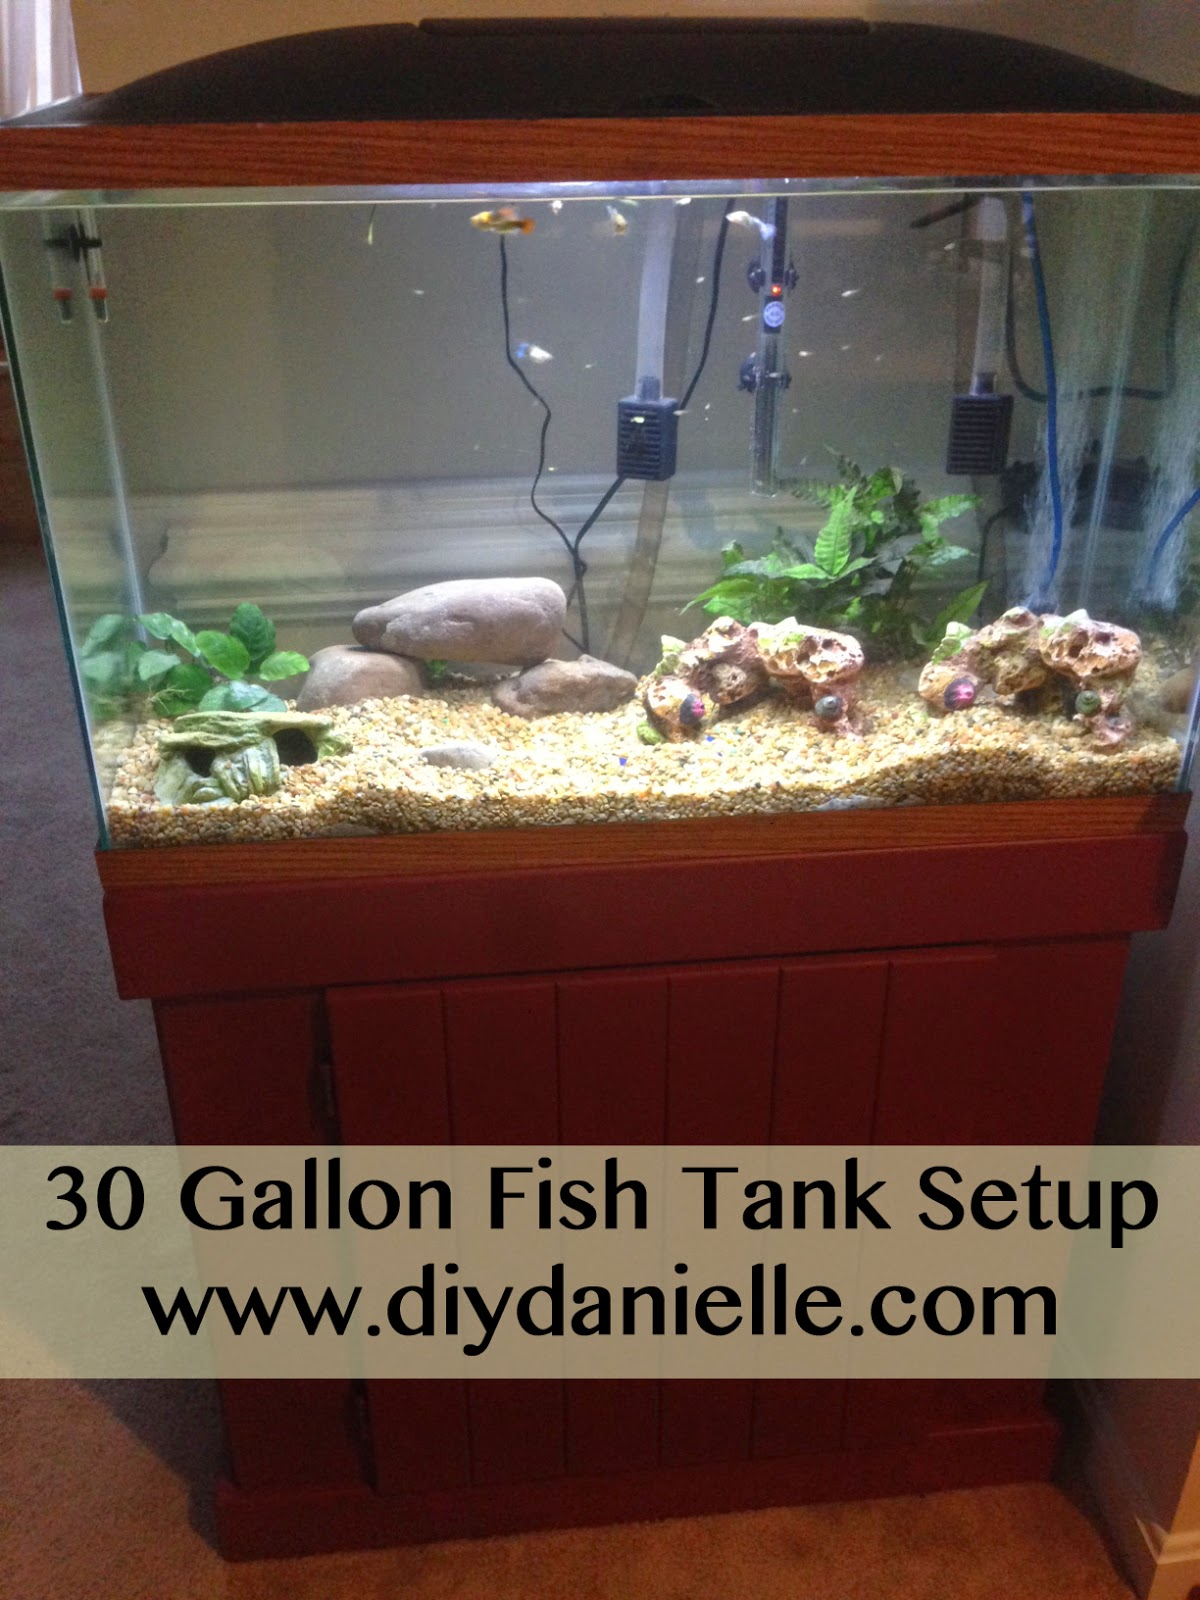 30 Gallon Fish Tank Setup DIY Danielle